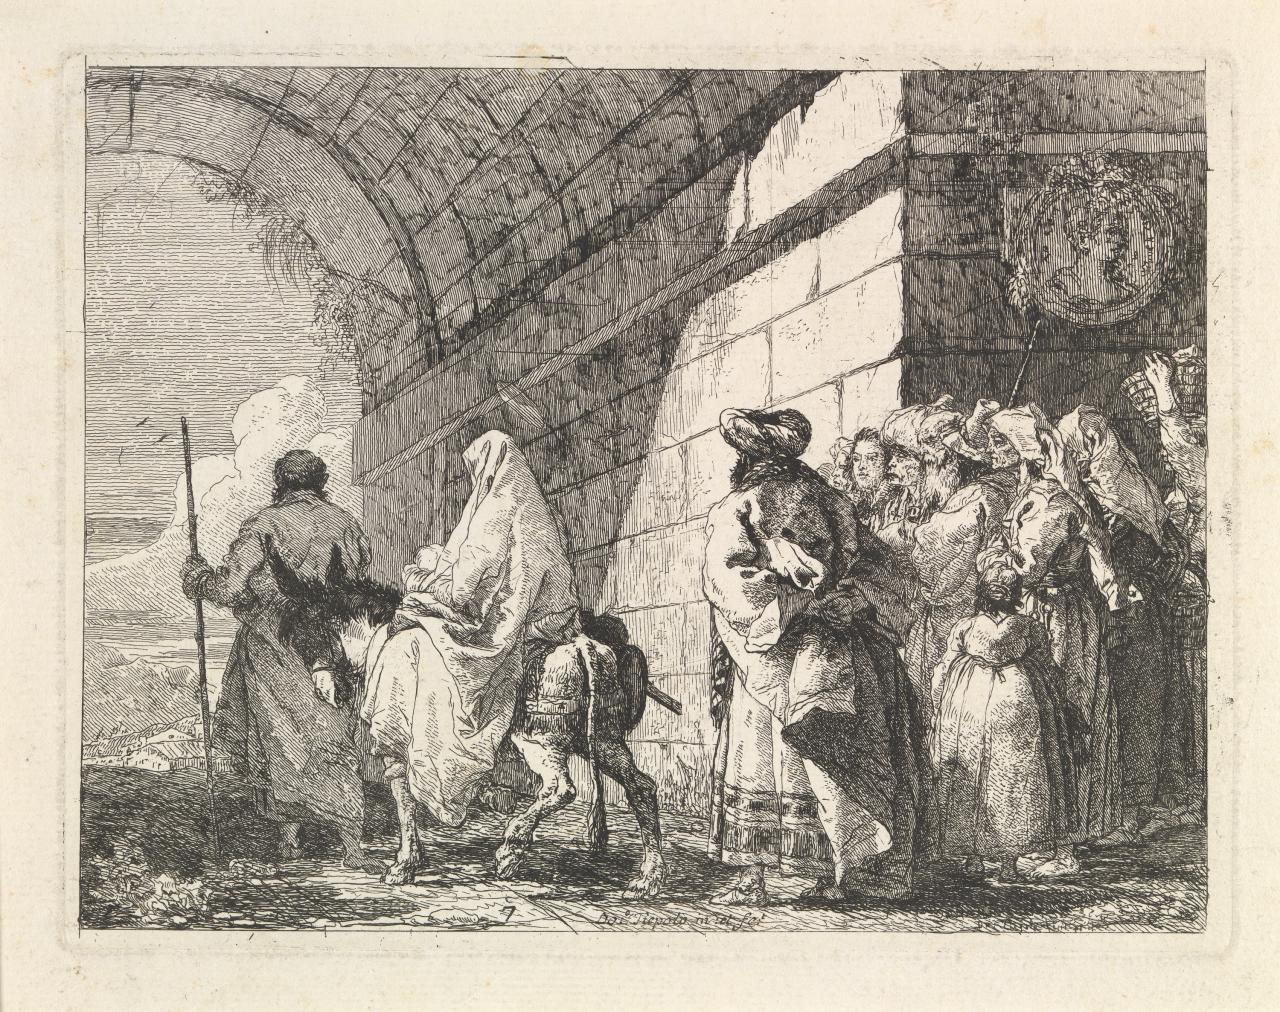 The Holy Family passes under a city arch (Flight into Egypt)